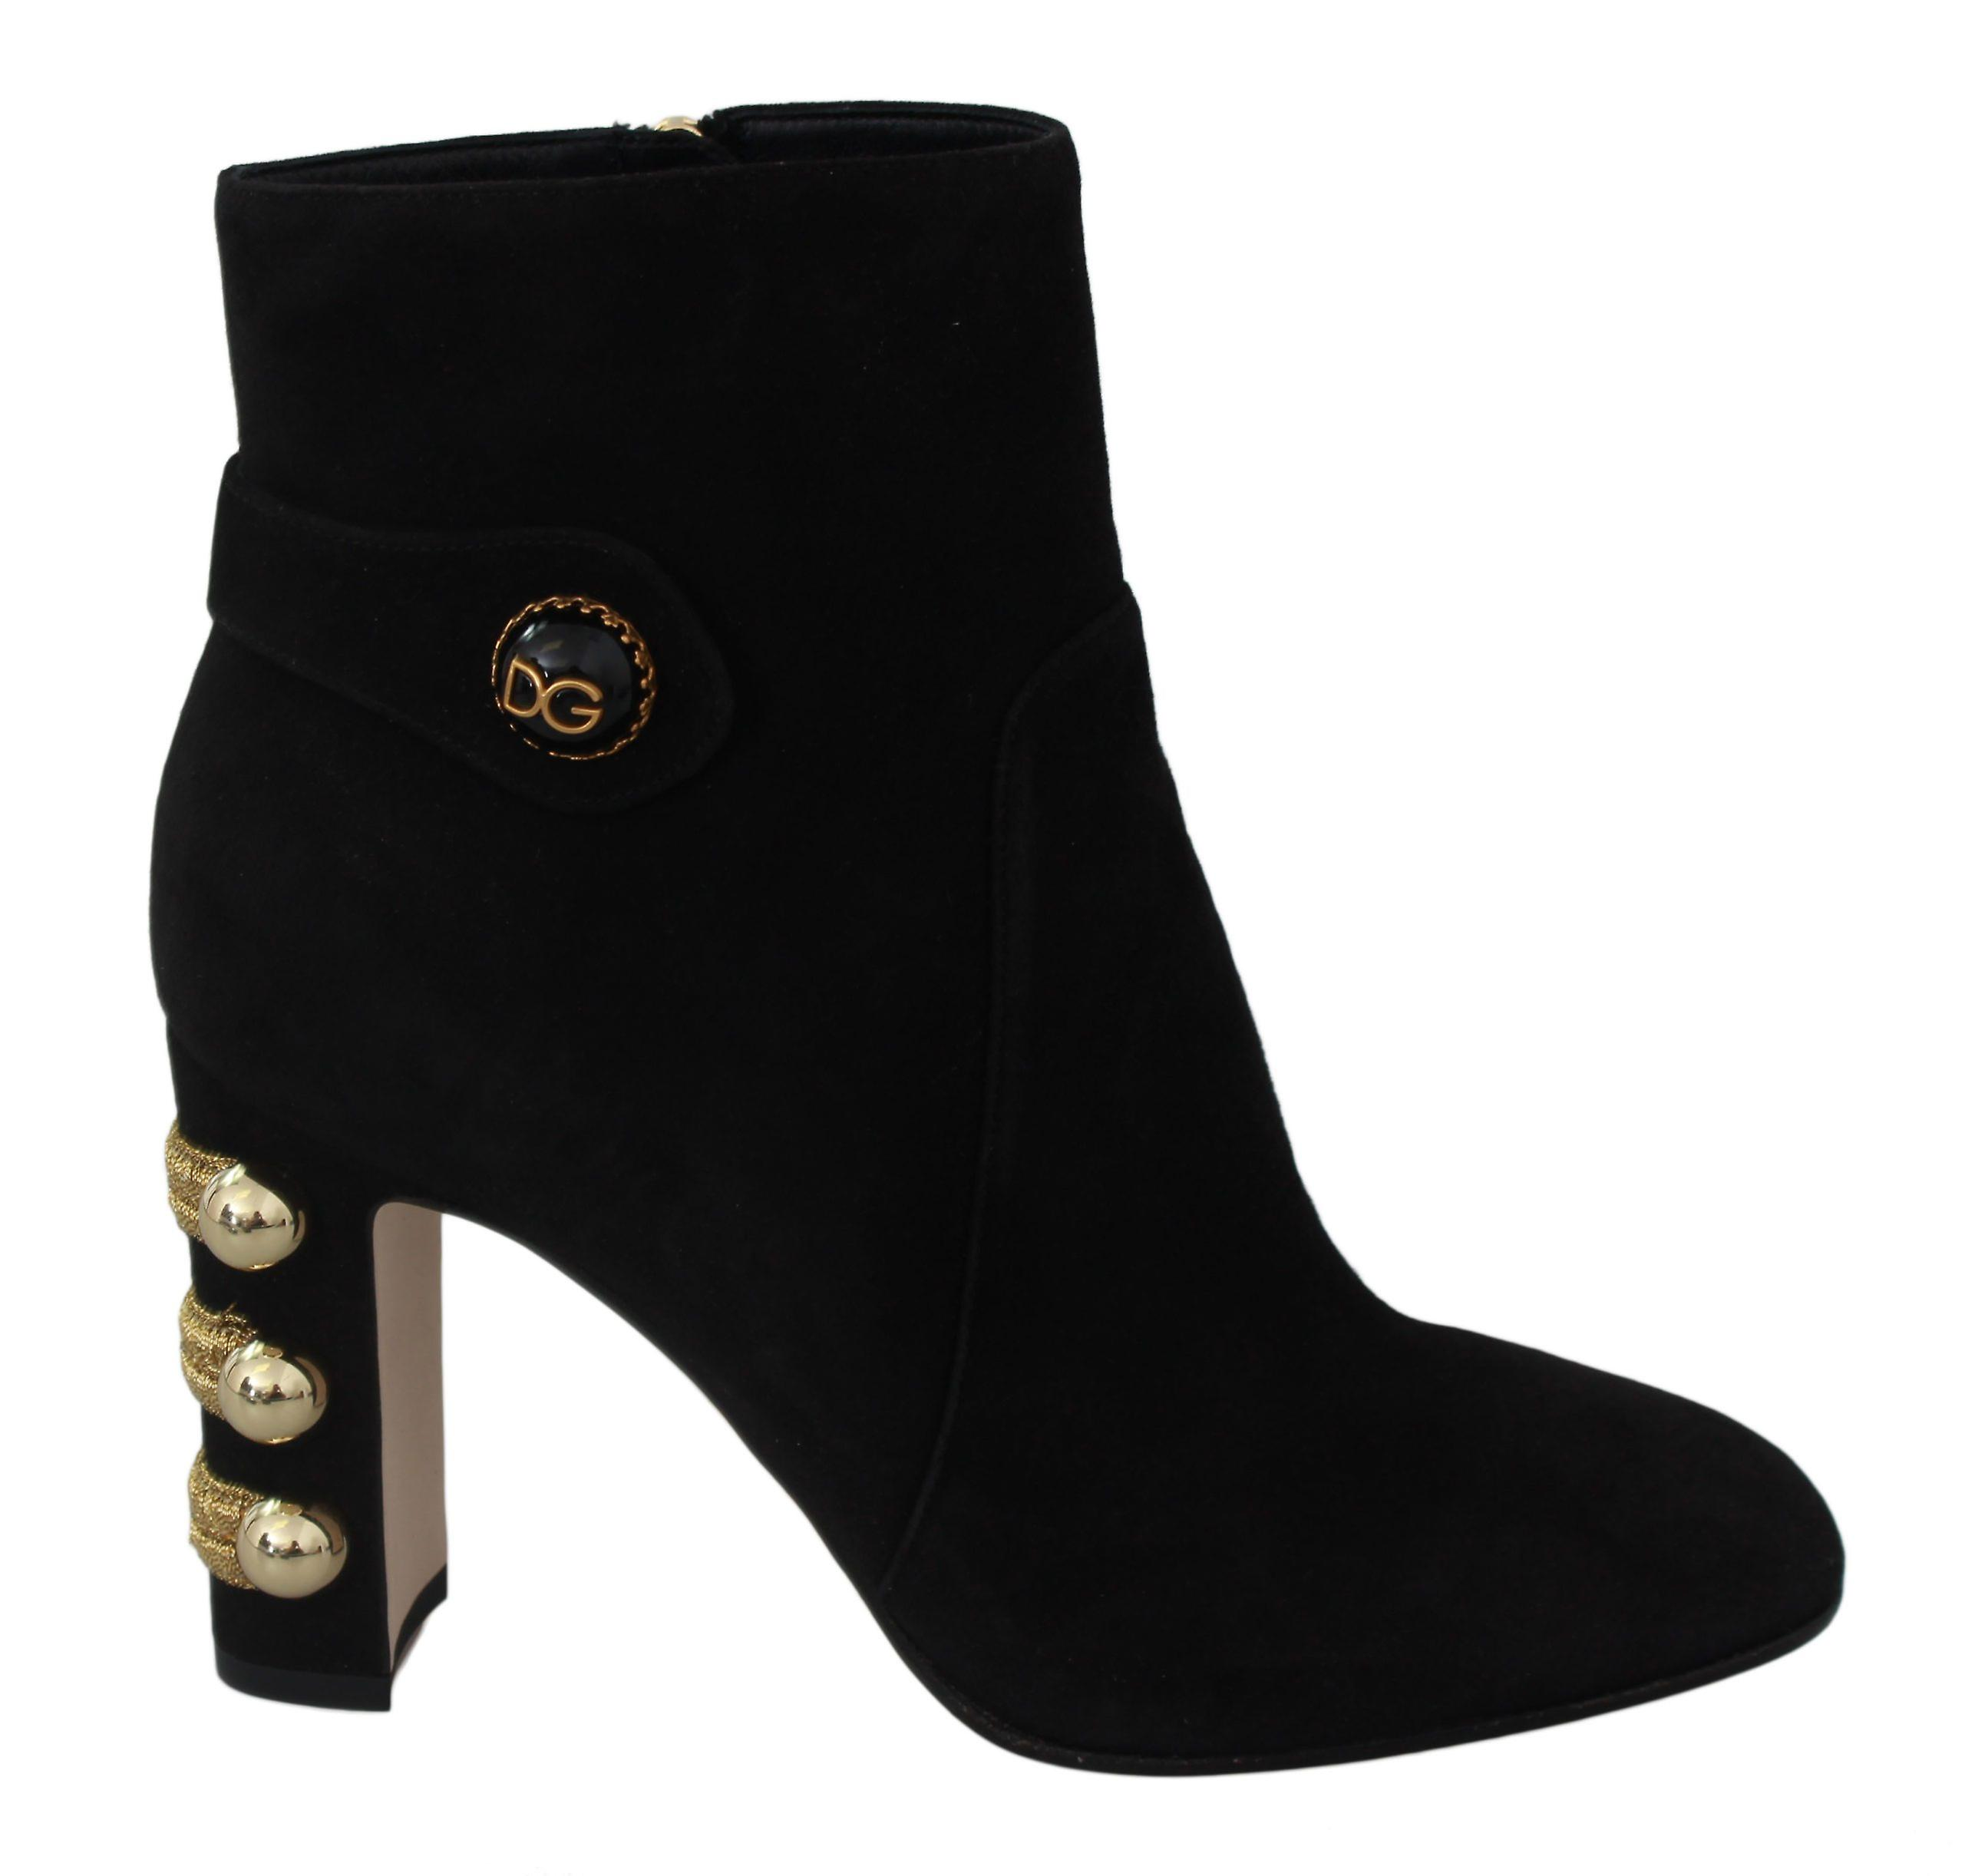 Dolce & Gabbana Black Suede Heel Ankle Boots Booties Shoes UmDvV